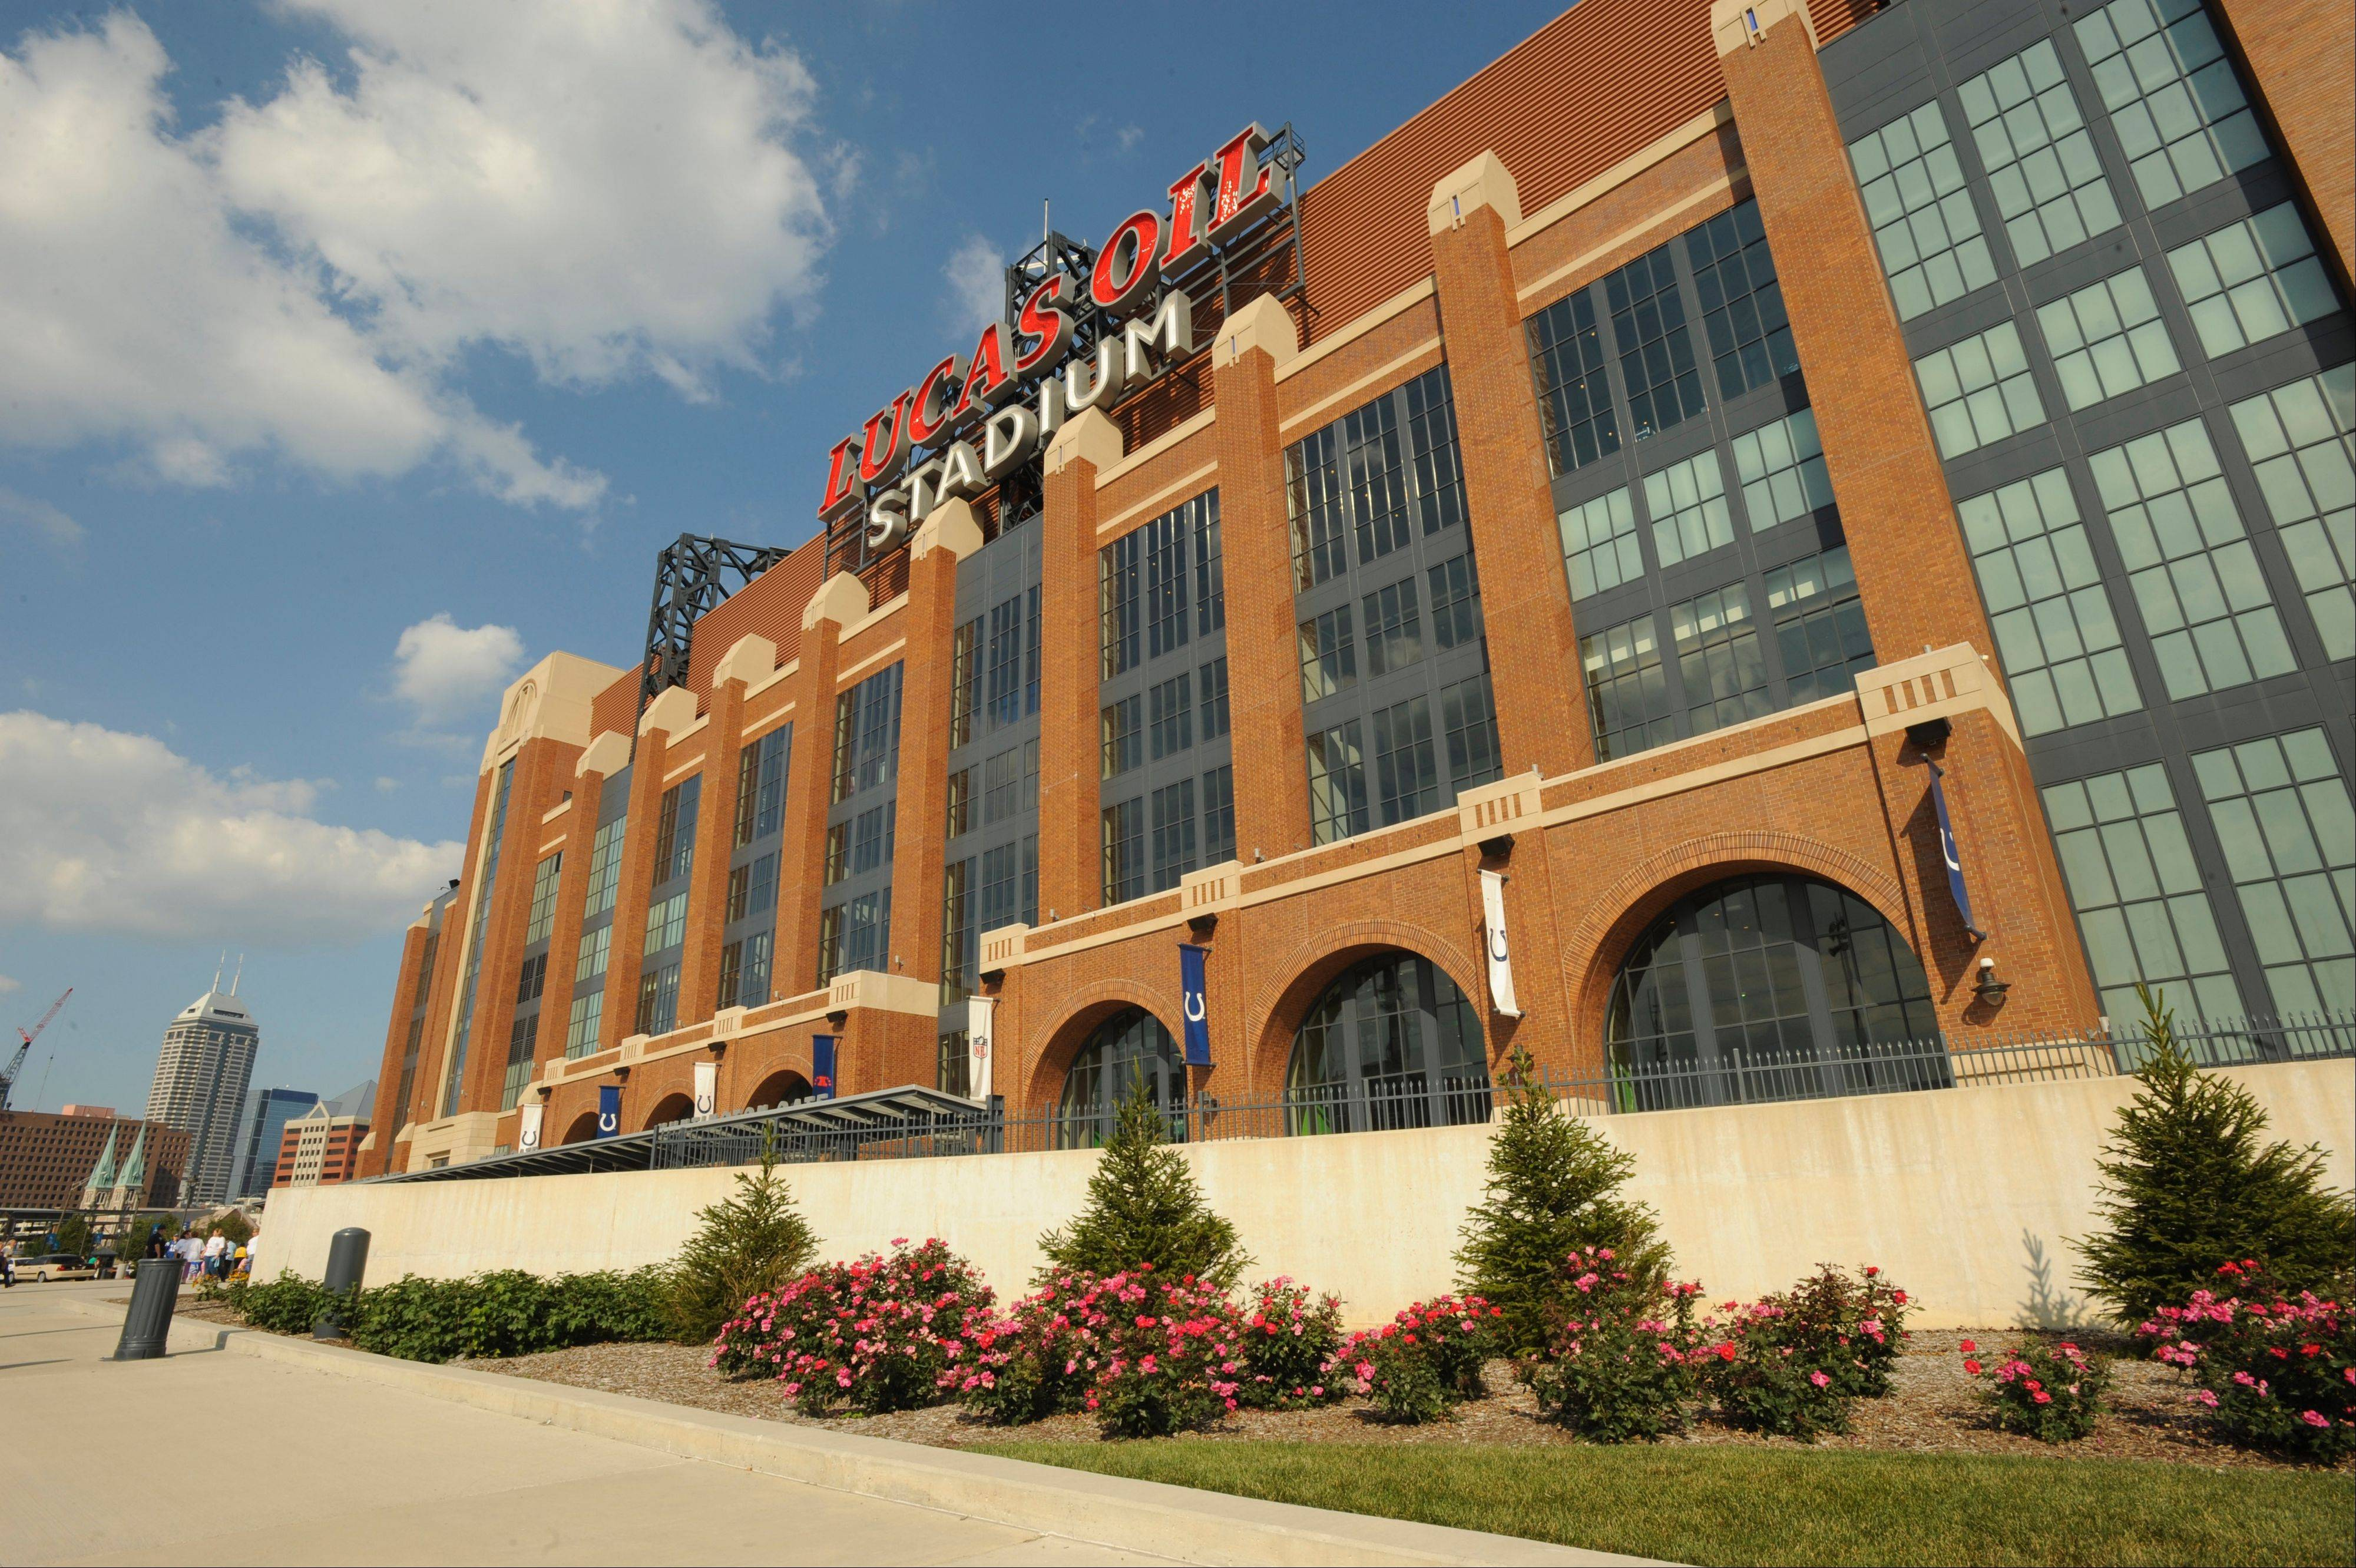 Associated Press Lucas Oil Stadium in Indianapolis is one of the more expensive public stadium deals in the country, according to a new book that looks at the public share of costs associated with stadium deals.